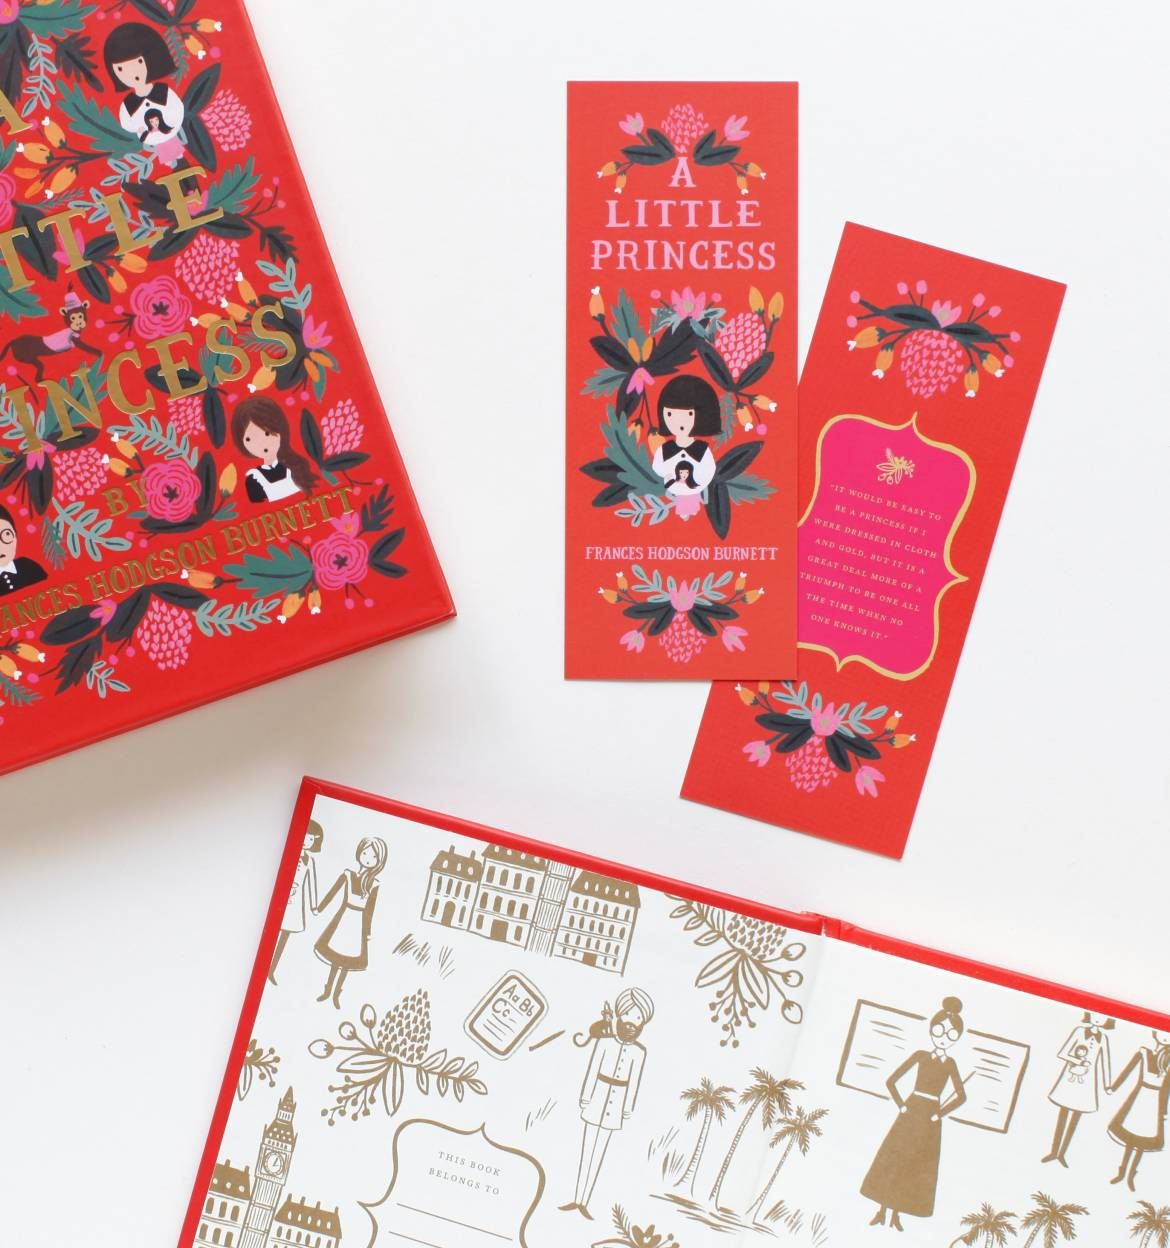 A Little Princess Hardcover Book Published By Puffin In Bloom With